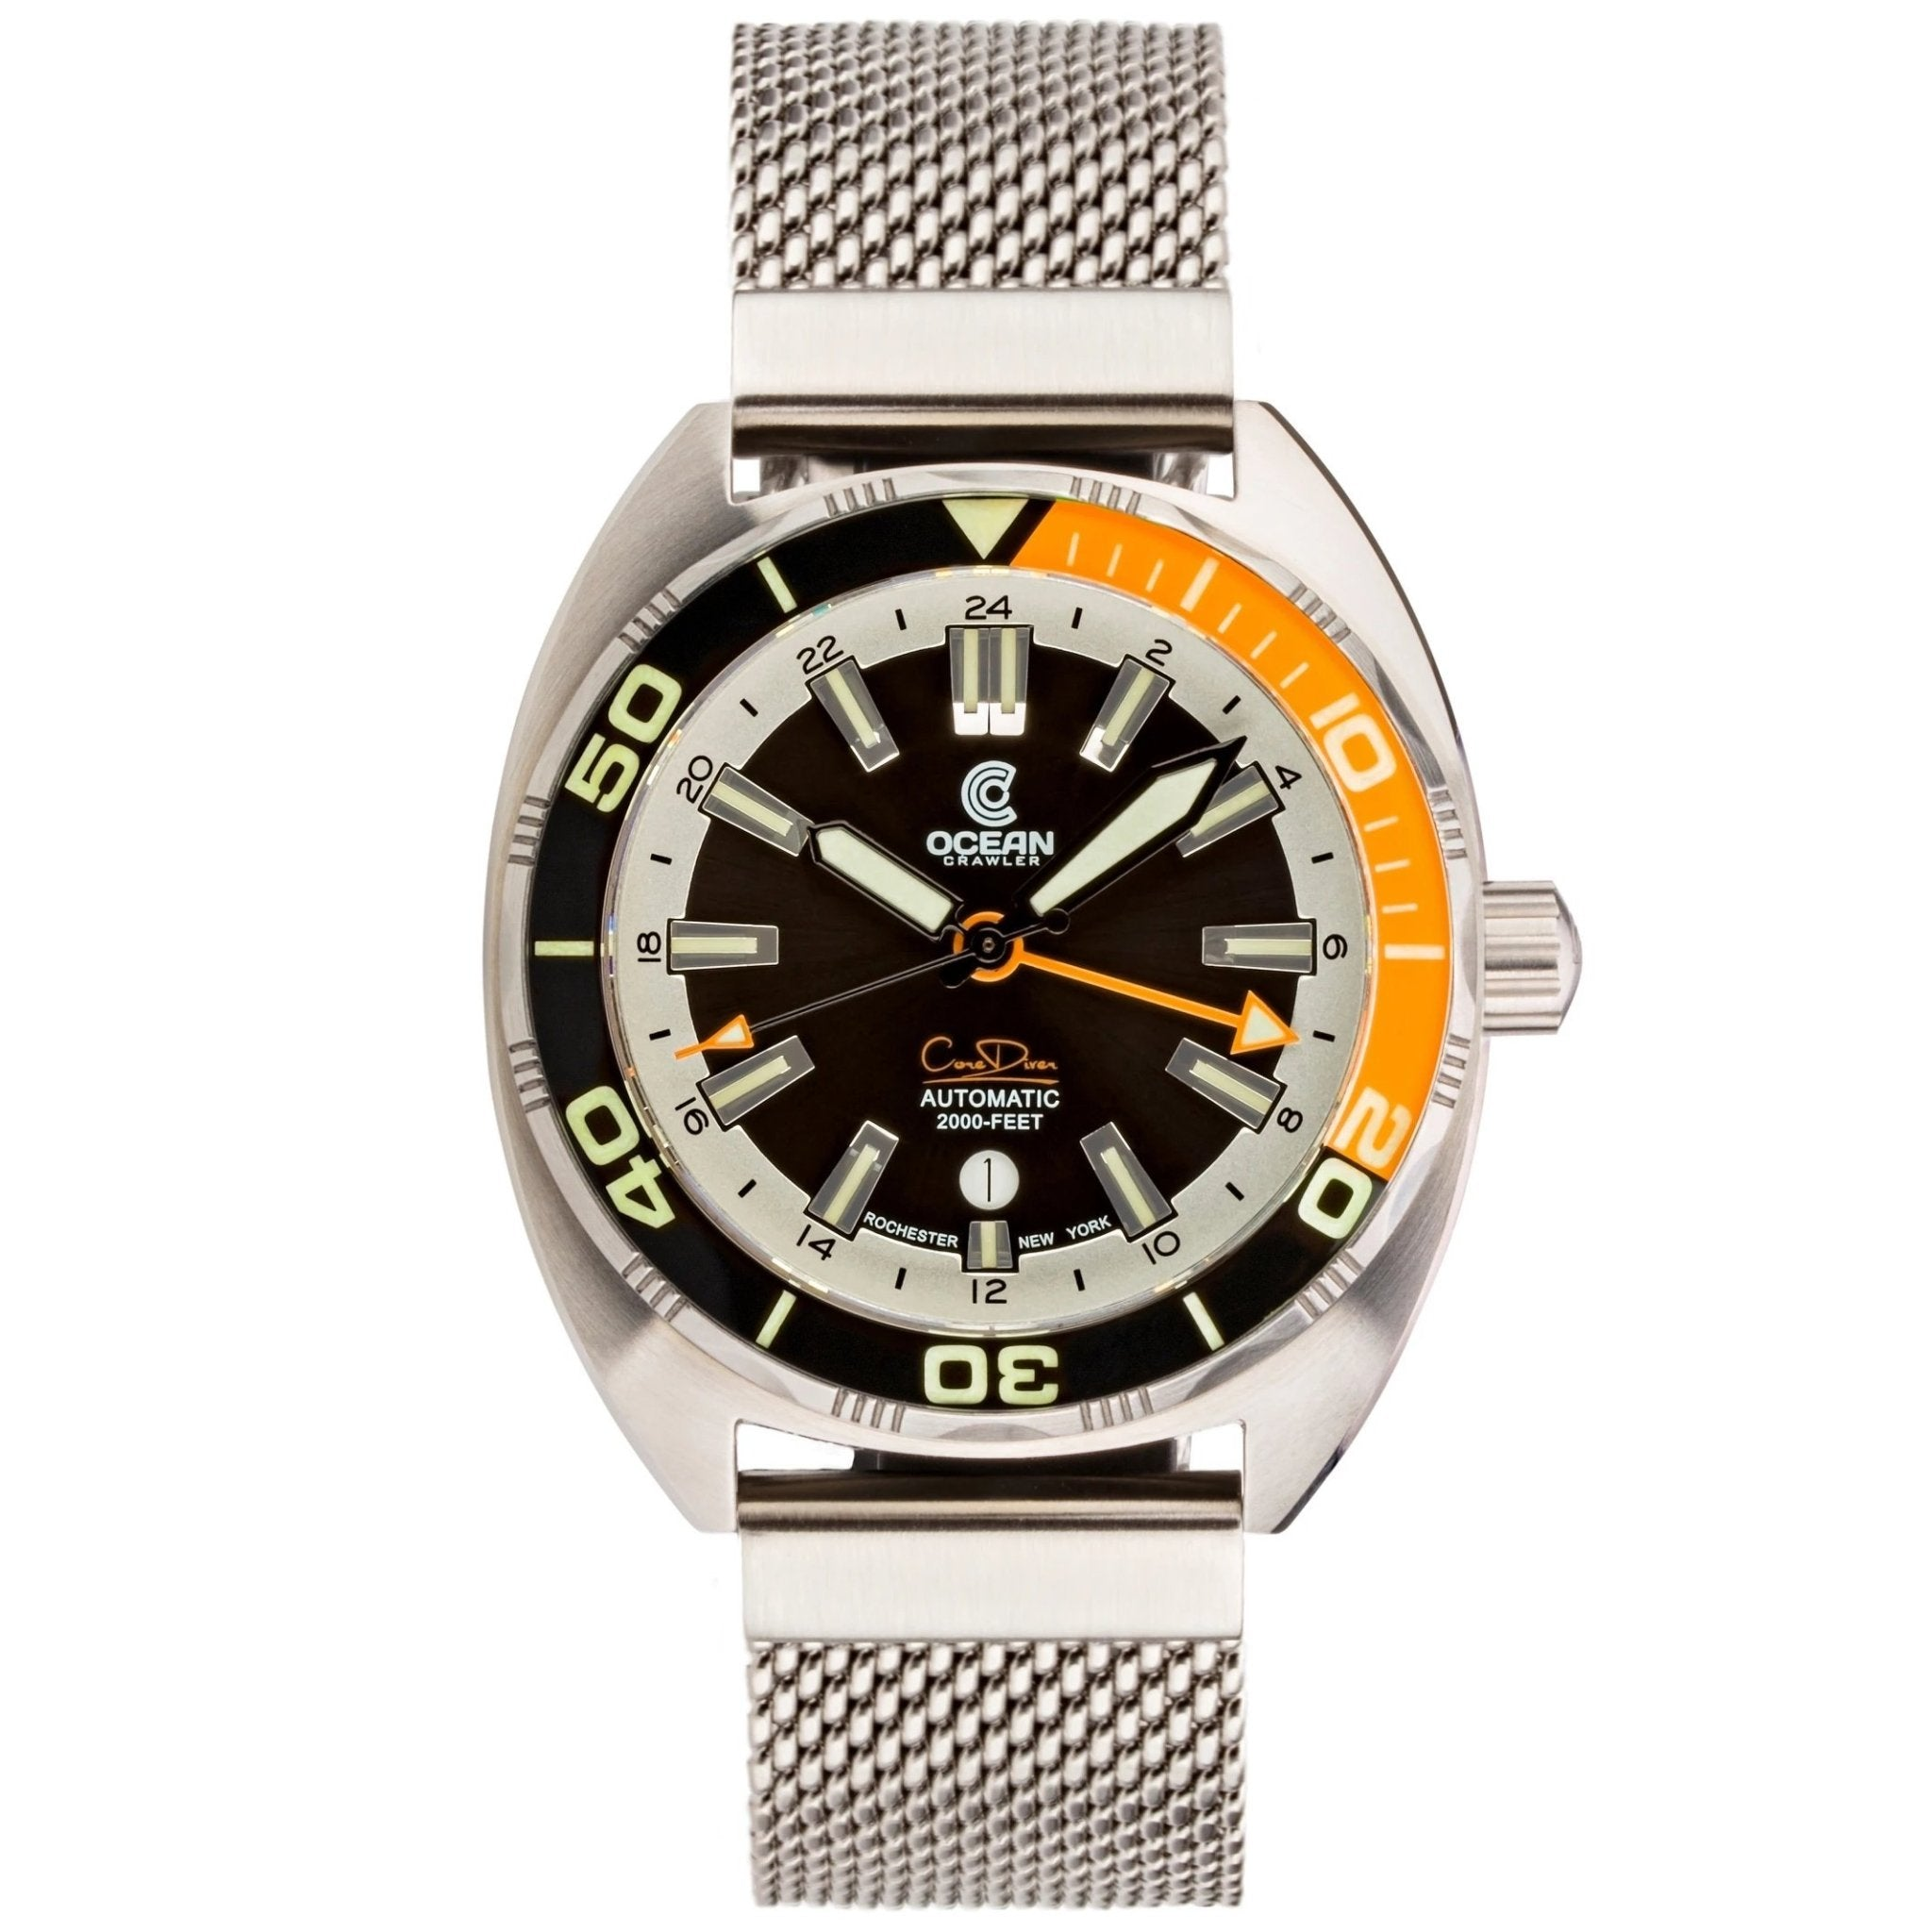 Ocean Crawler Core Diver GMT - Black/Orange - Ocean Crawler Watch Co.